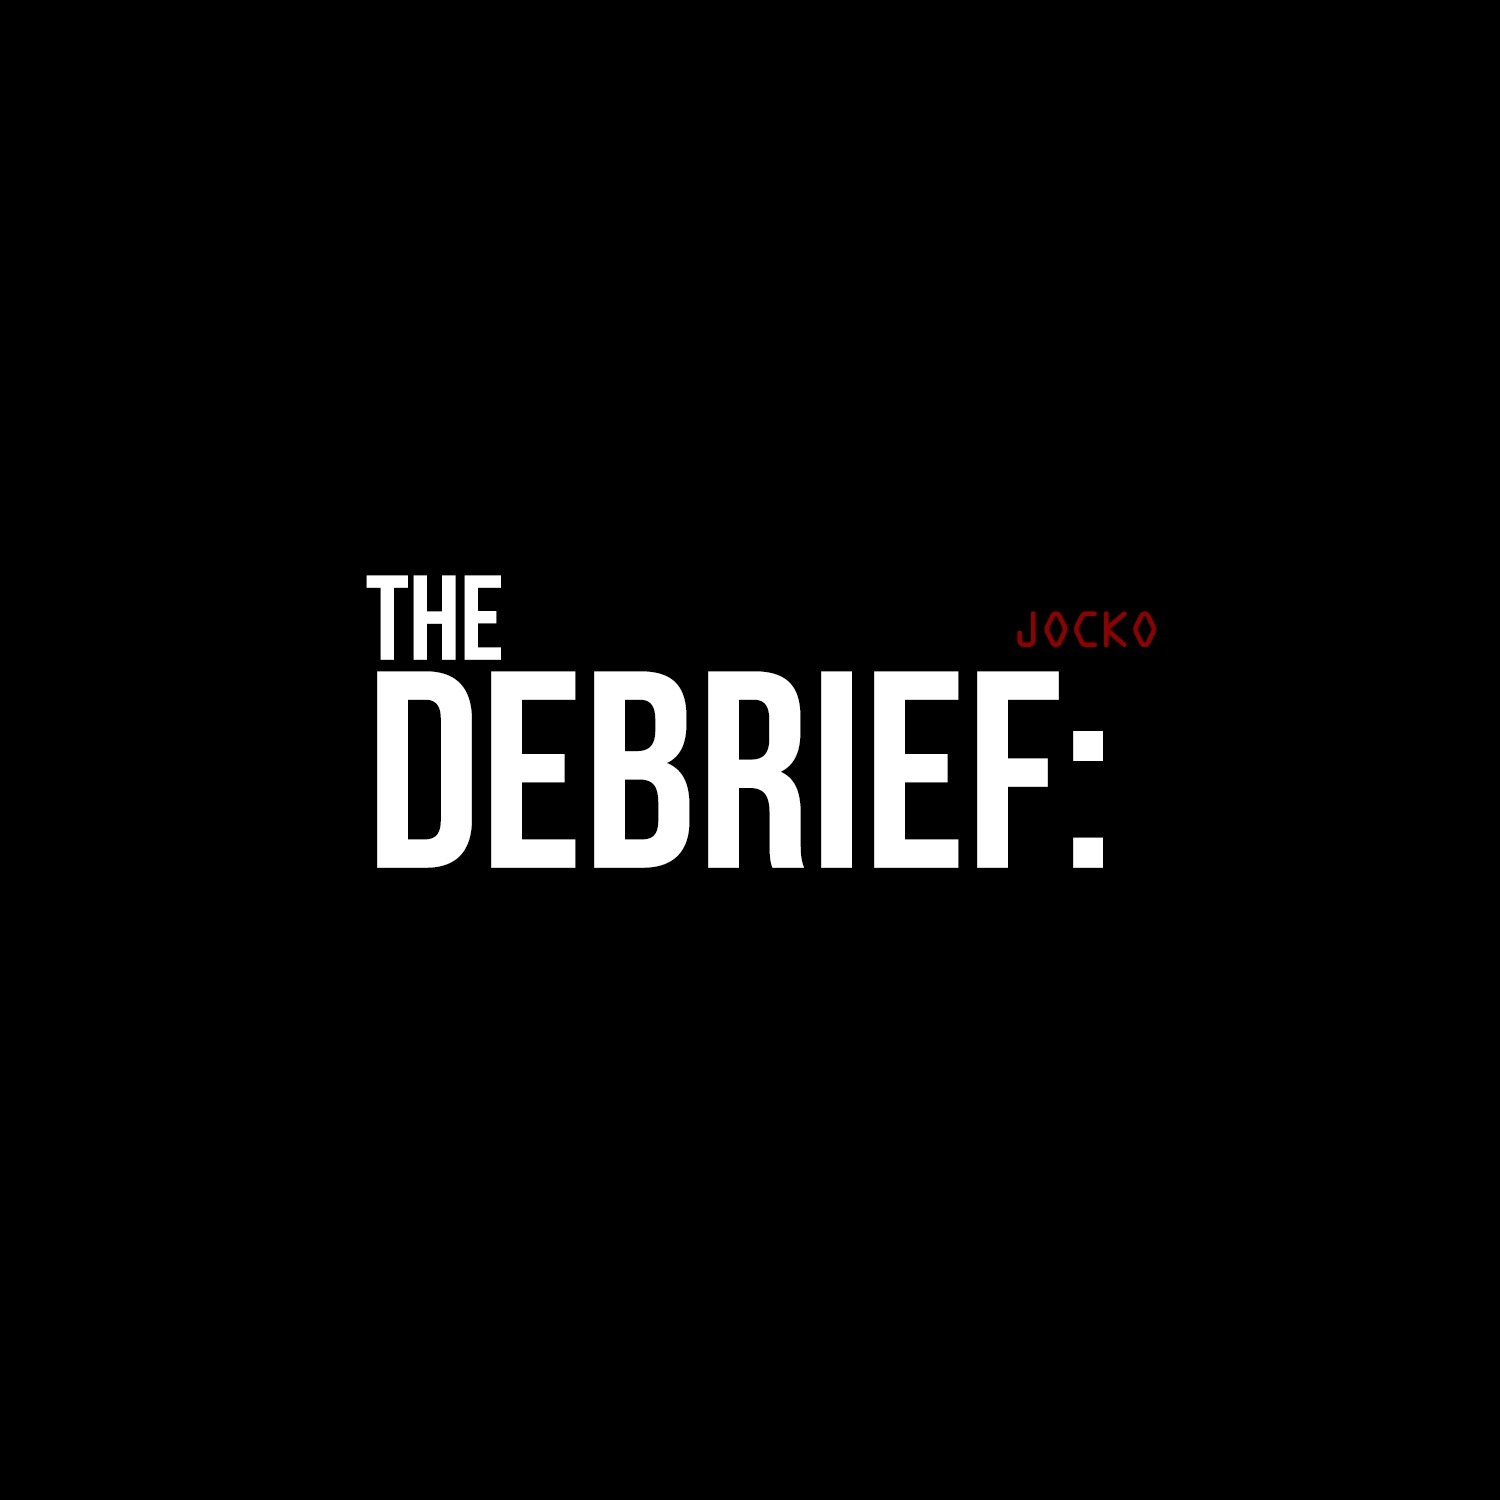 The Debrief w/ Jocko and Dave Berke #14: How to Consistently Control Your Ego